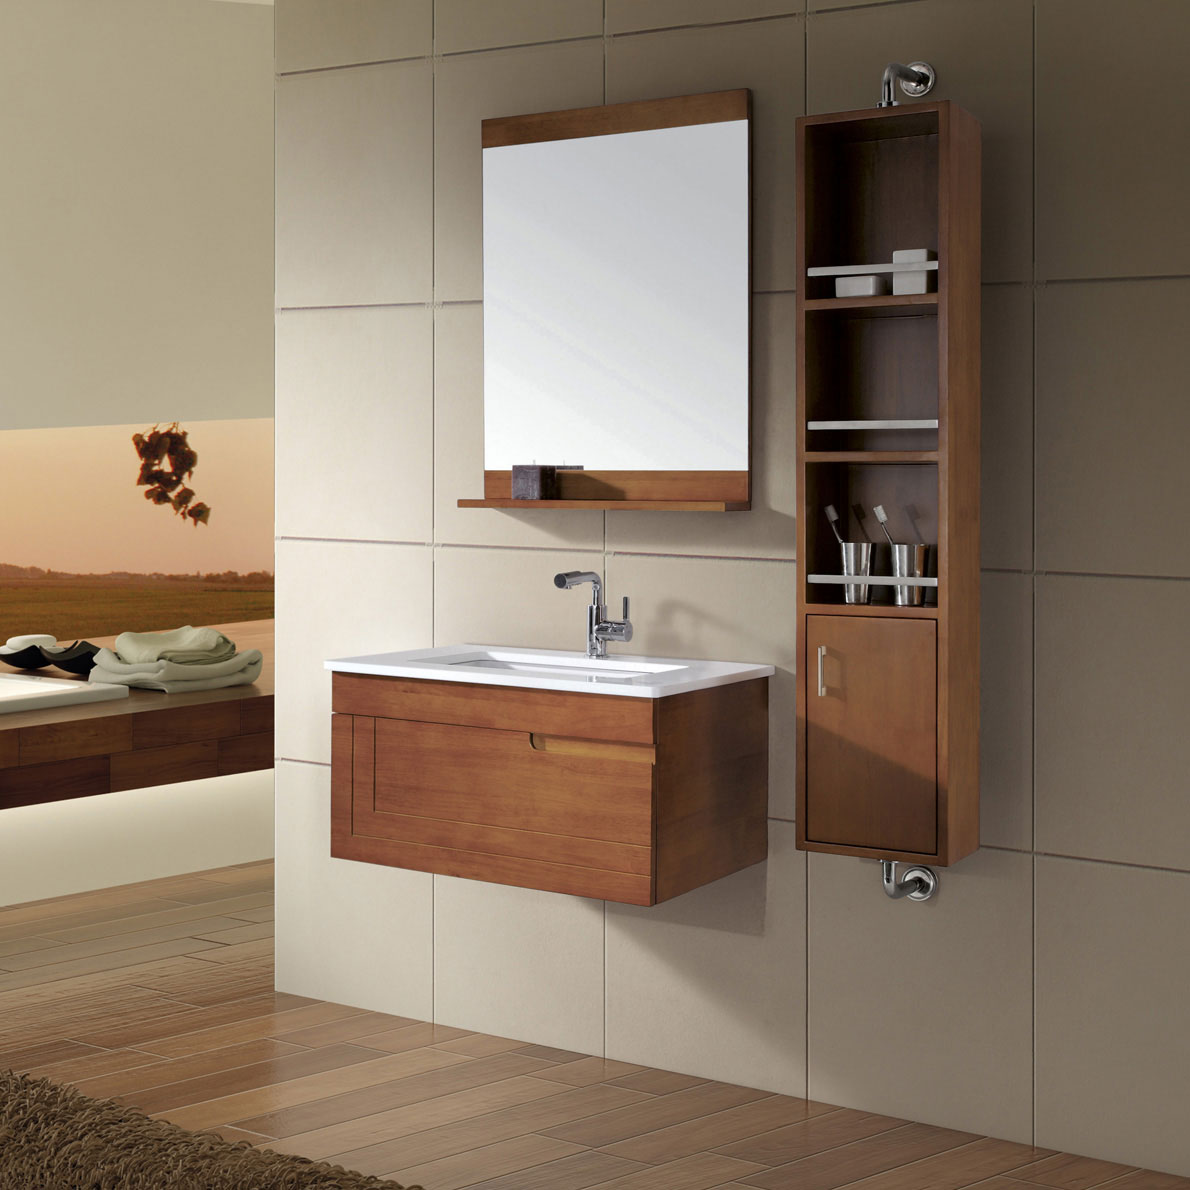 Fantastic Interior DEcor With Brown Wooden Small Bathroom Cabinet And Mirror